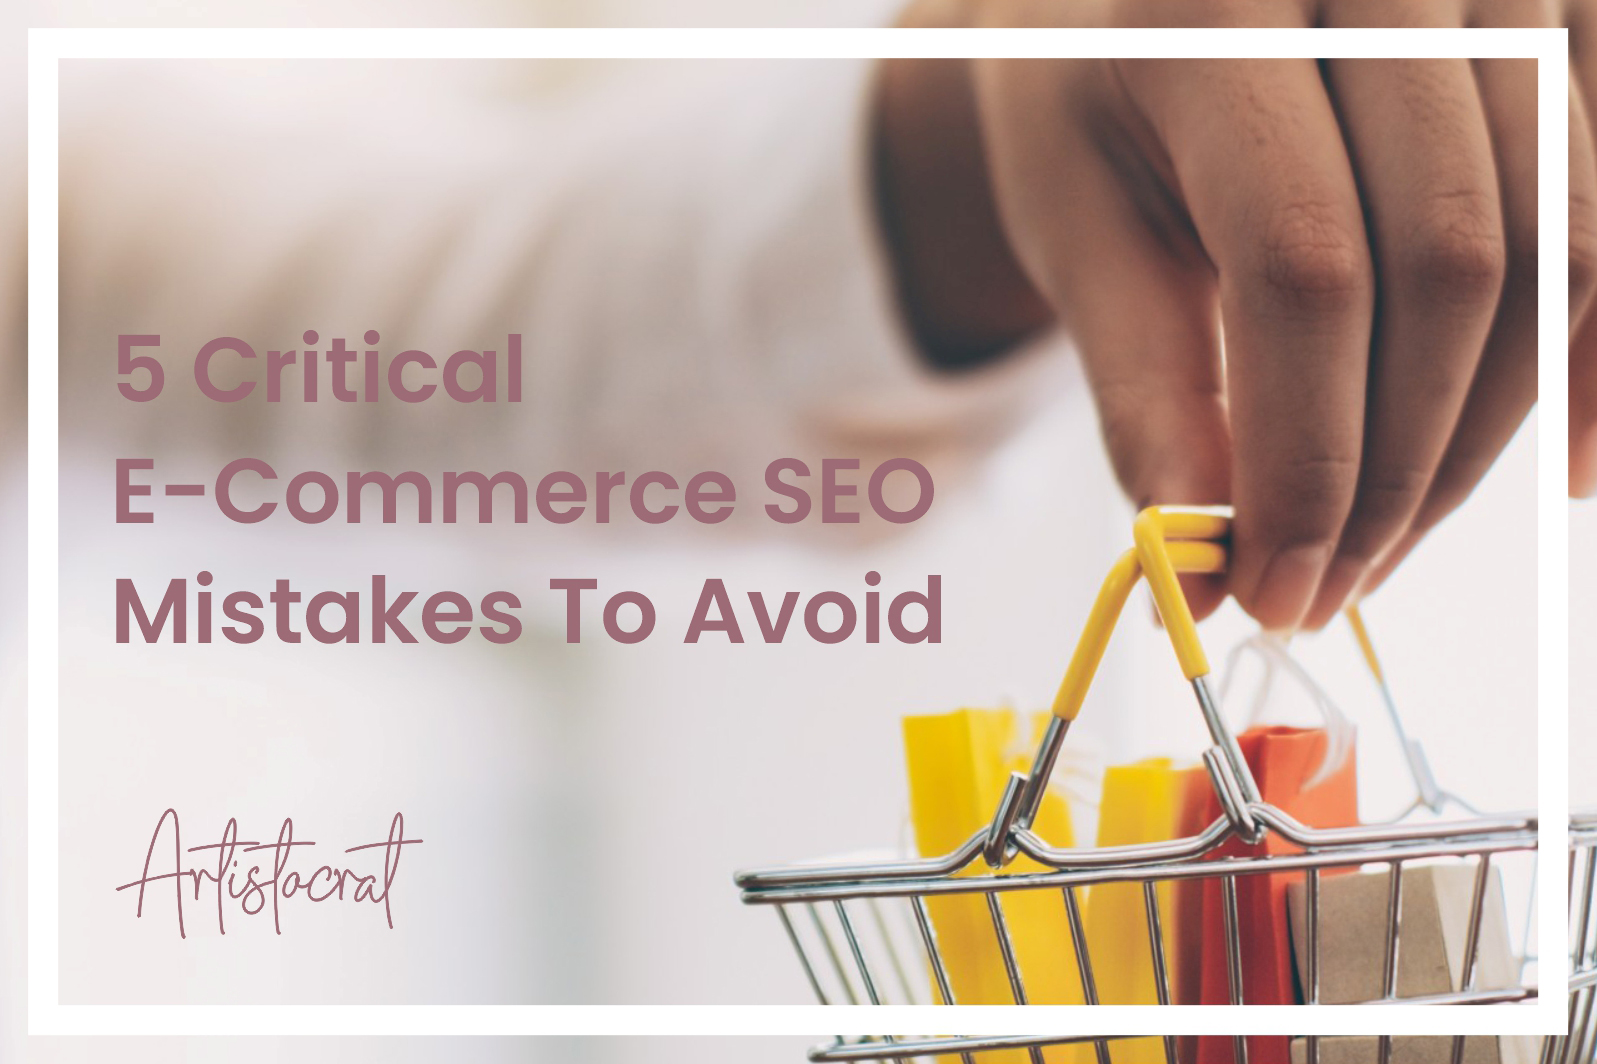 5-Critical-E-commerce-SEO-Mistake-Avoid